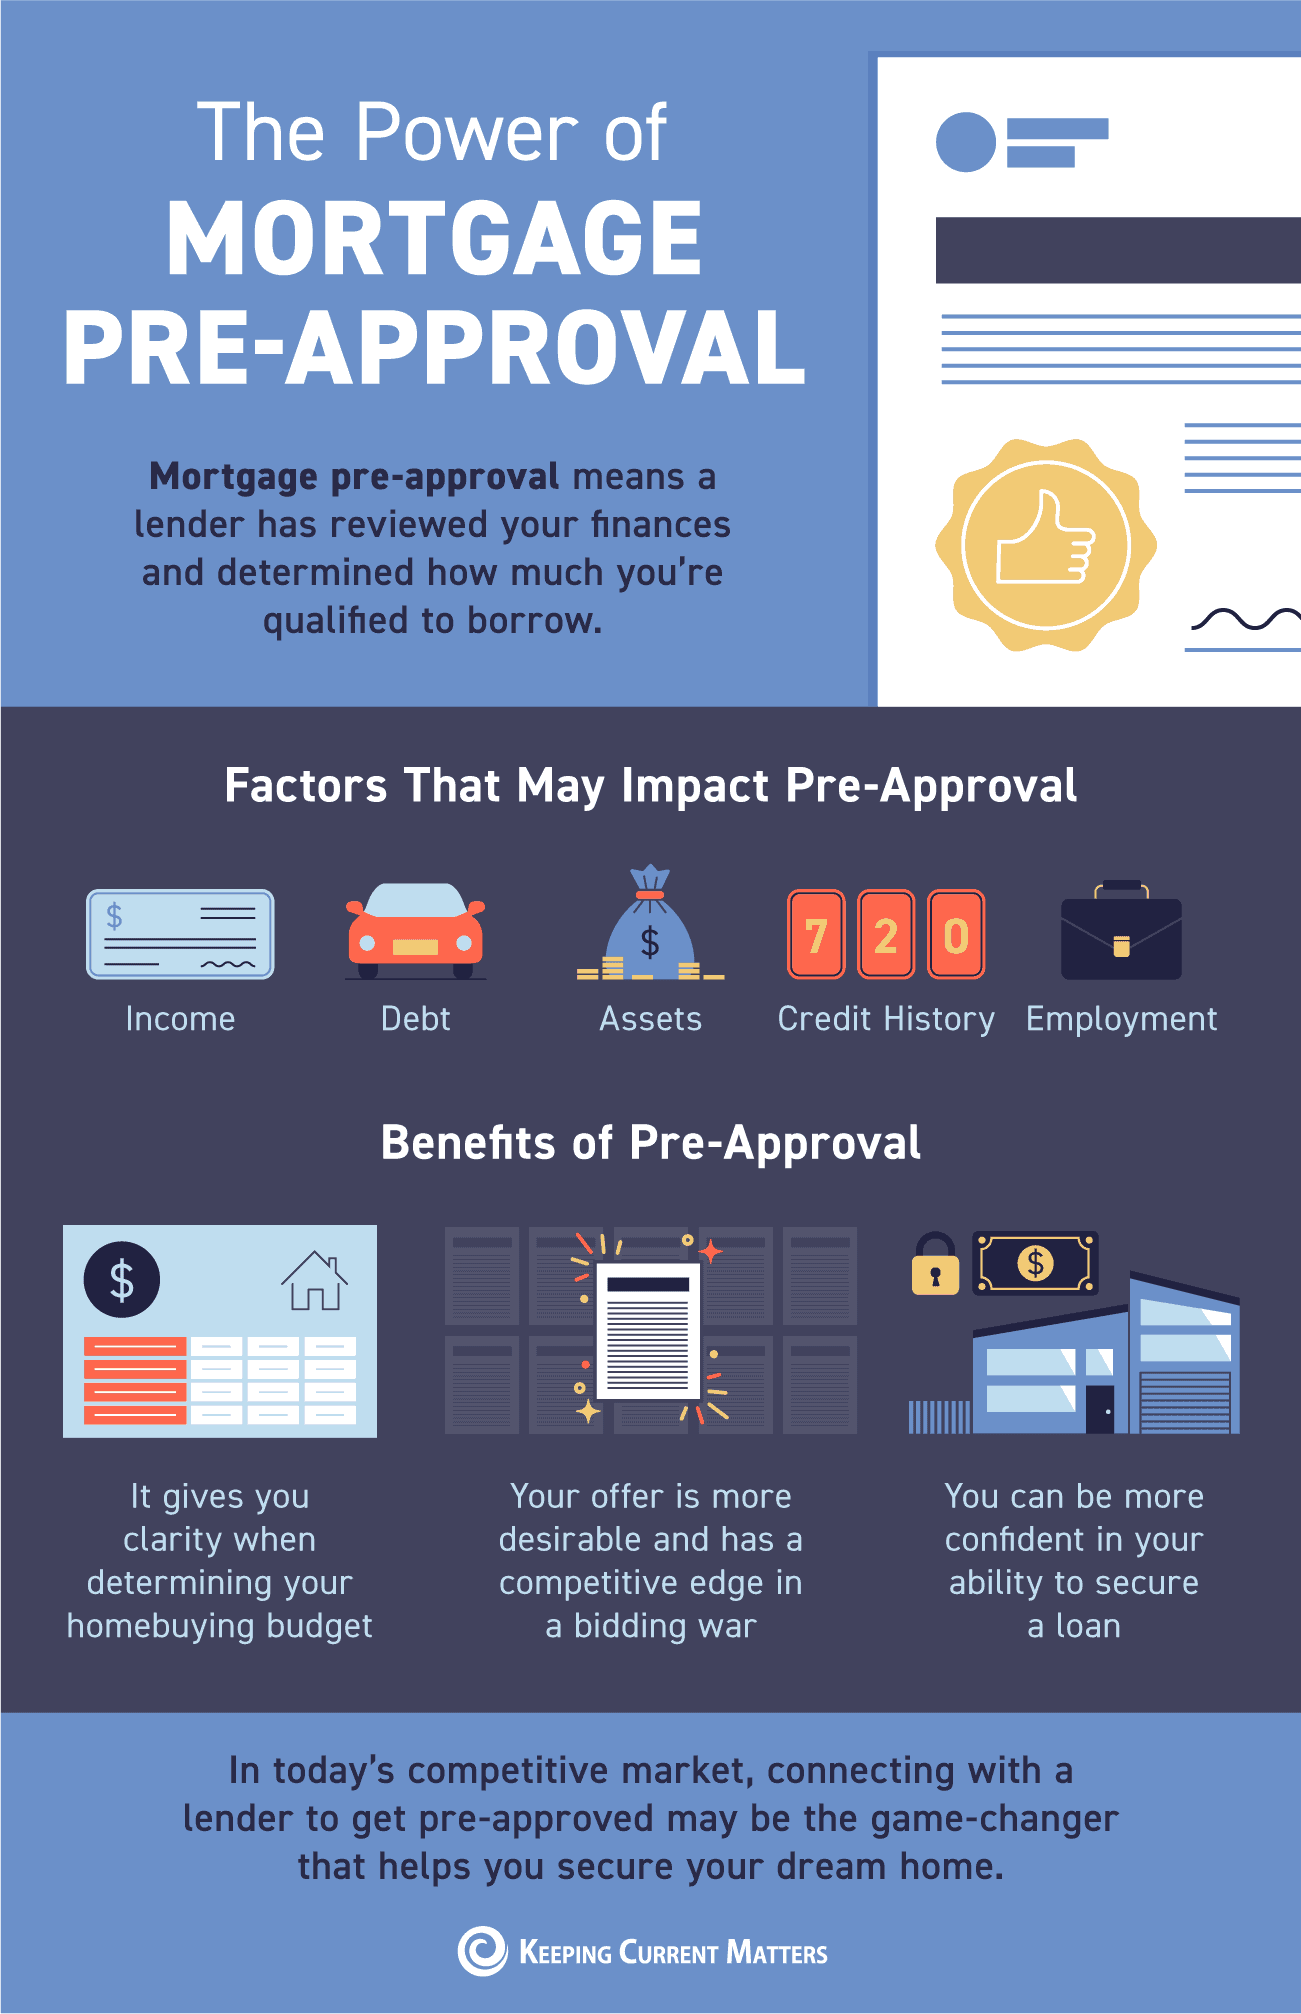 The Power of Mortgage Pre-Approval [INFOGRAPHIC] | Keeping Current Matters